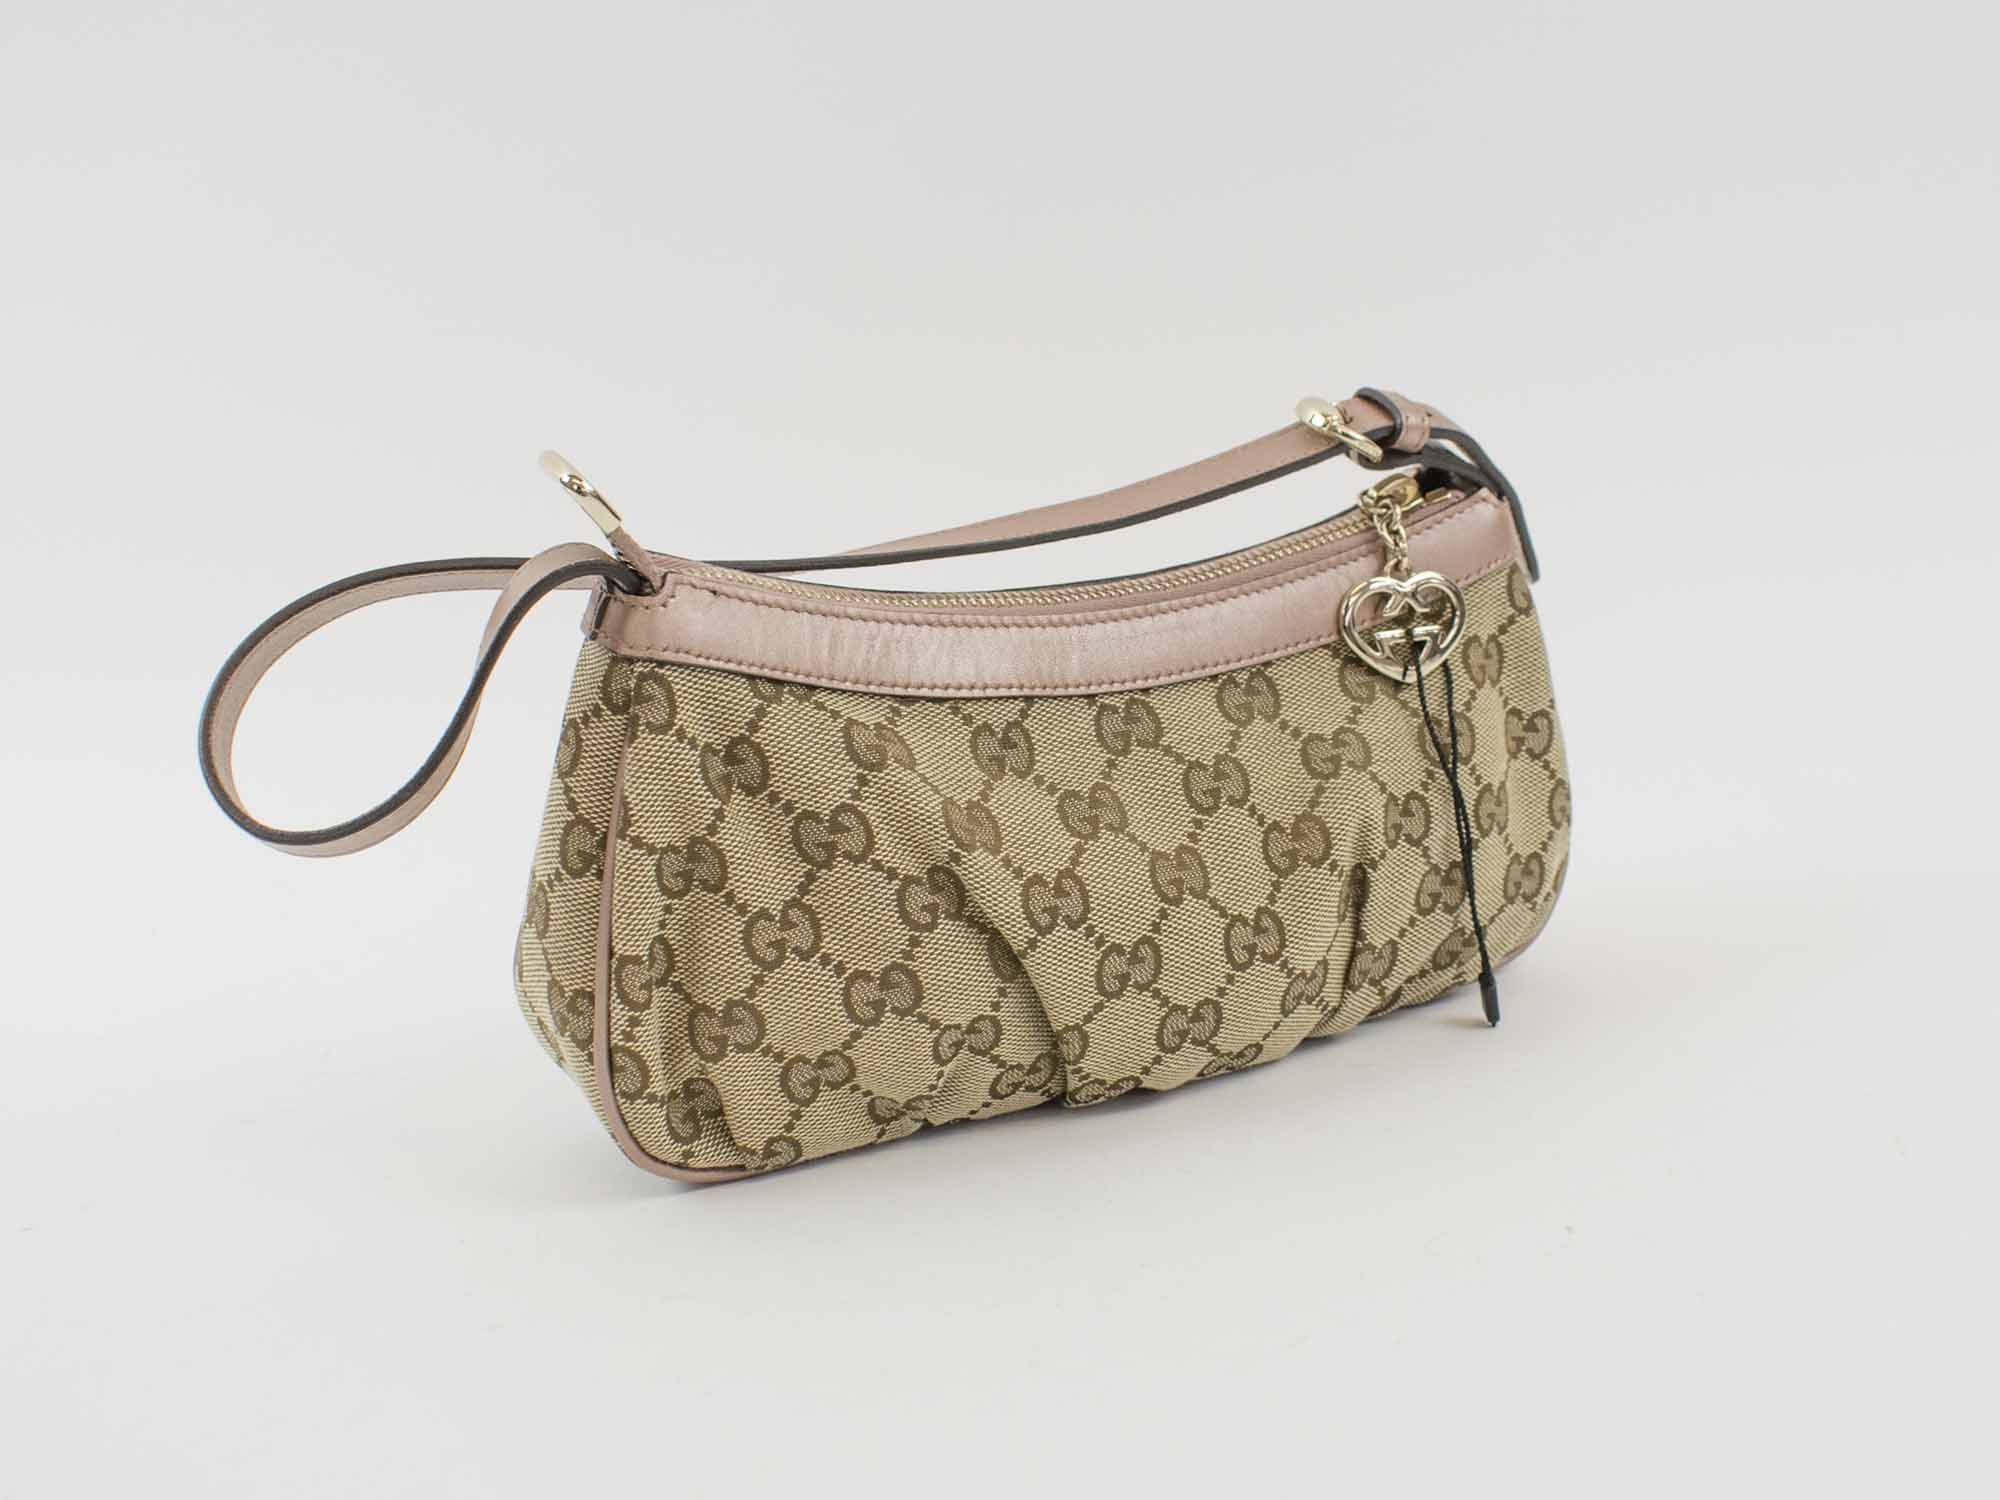 81fa051a958267 GUCCI POCHETTE SHOULDER HANDBAG, GG monogram canvas with metallic ...